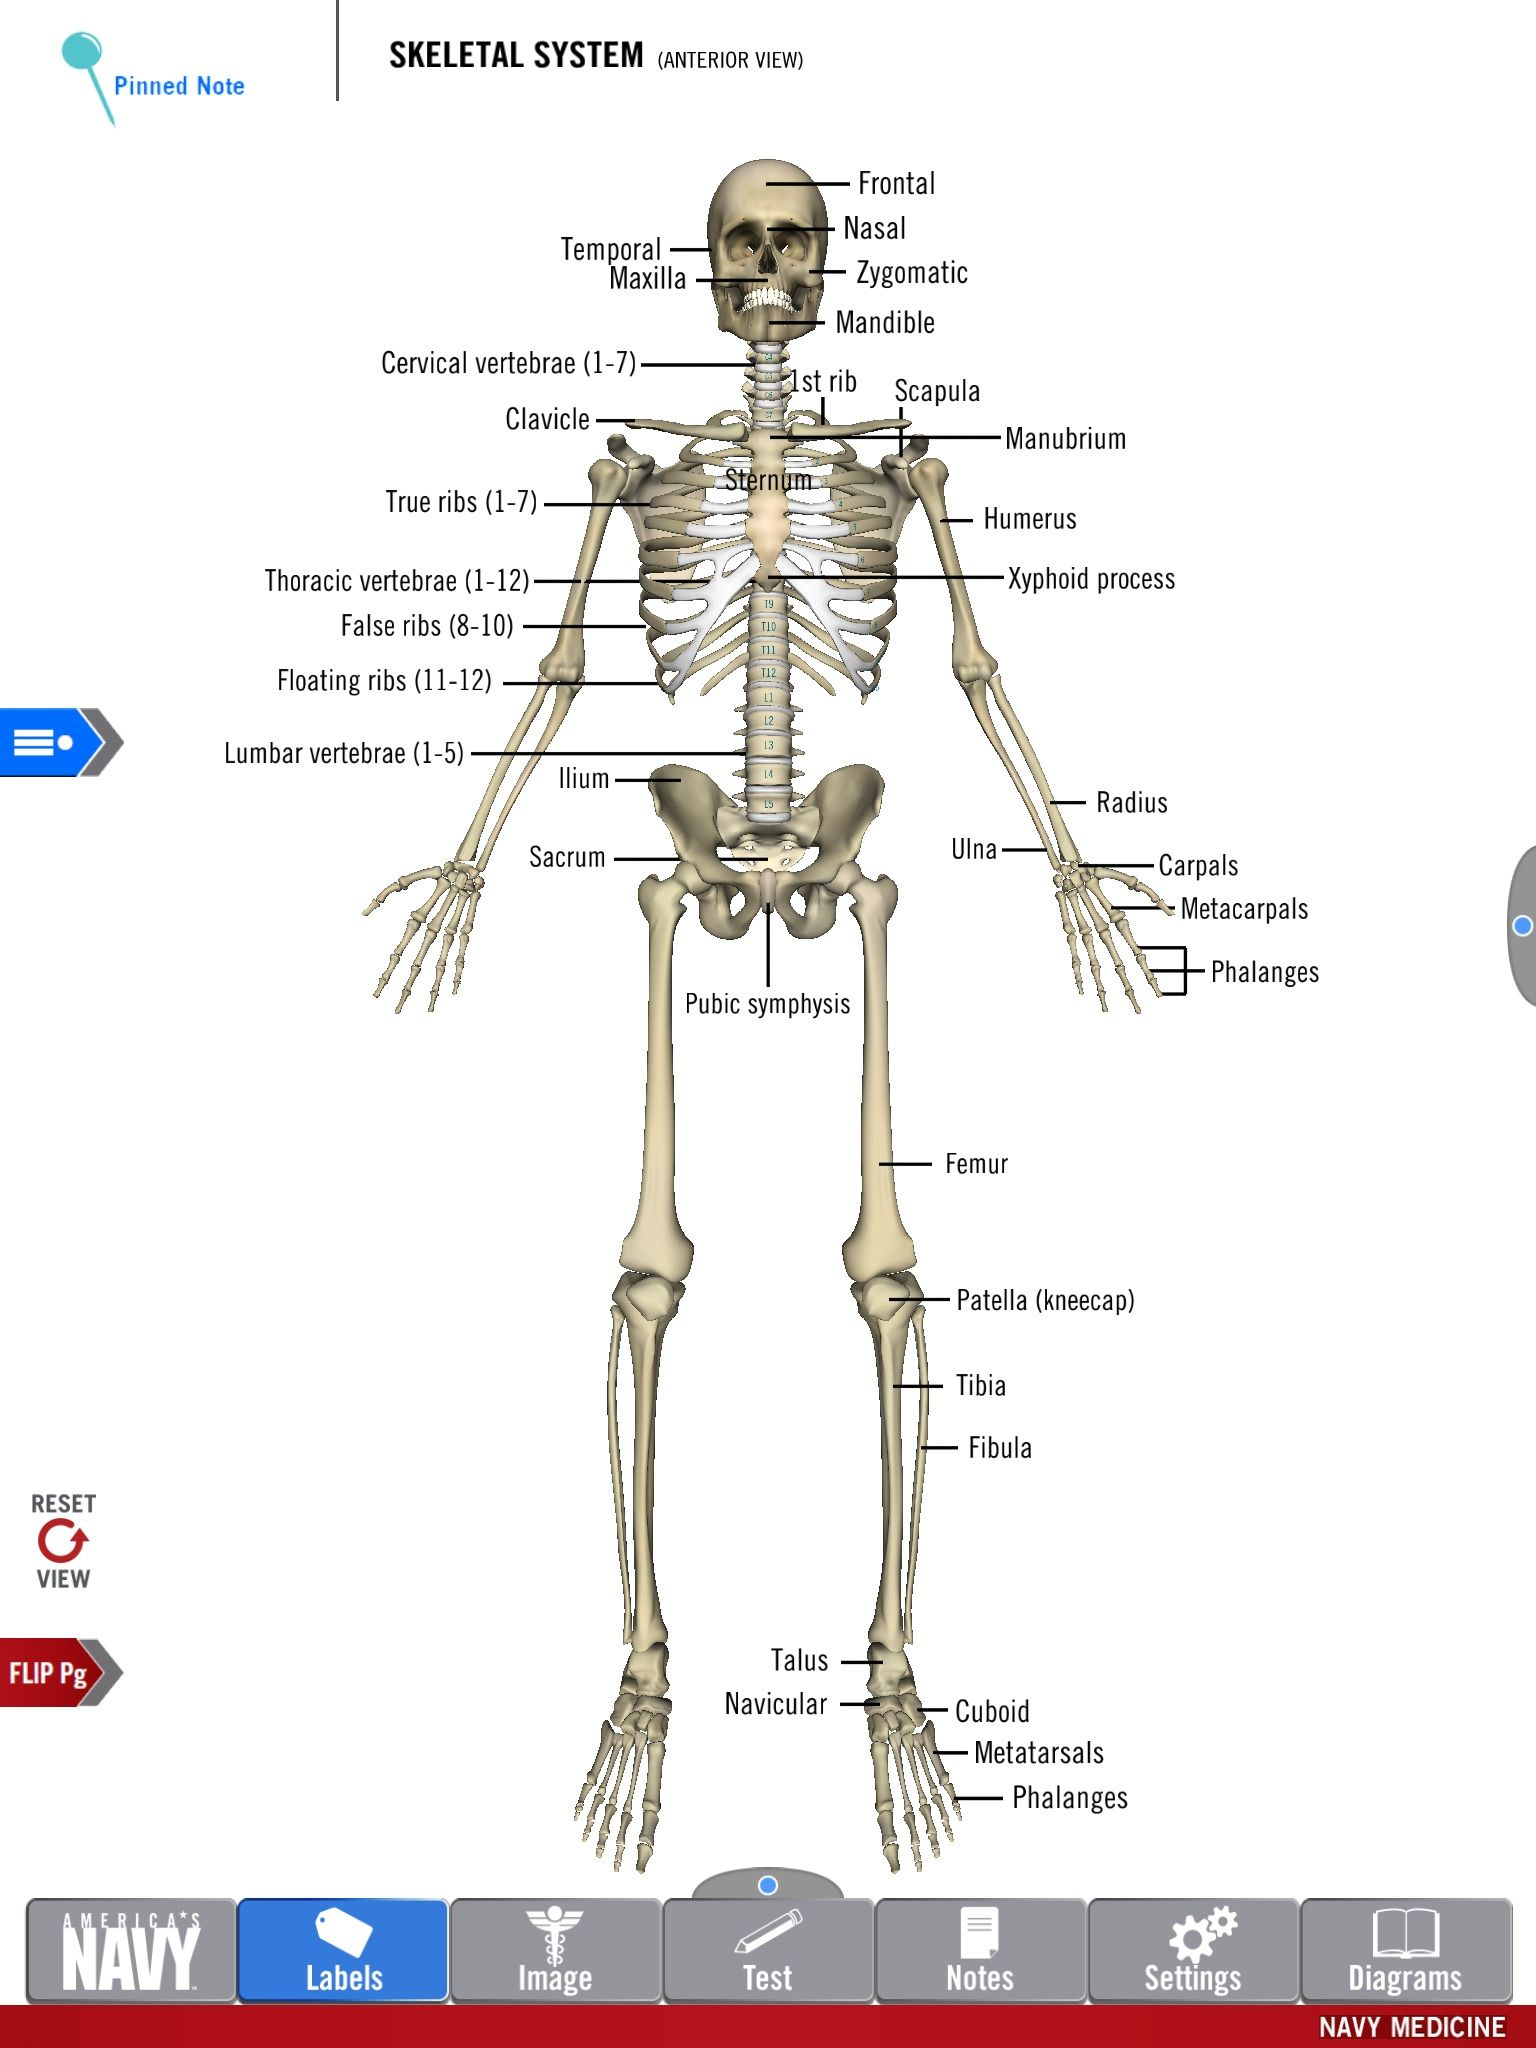 Diagram Of The Skeletal System From The Free Anatomy Study Guide App